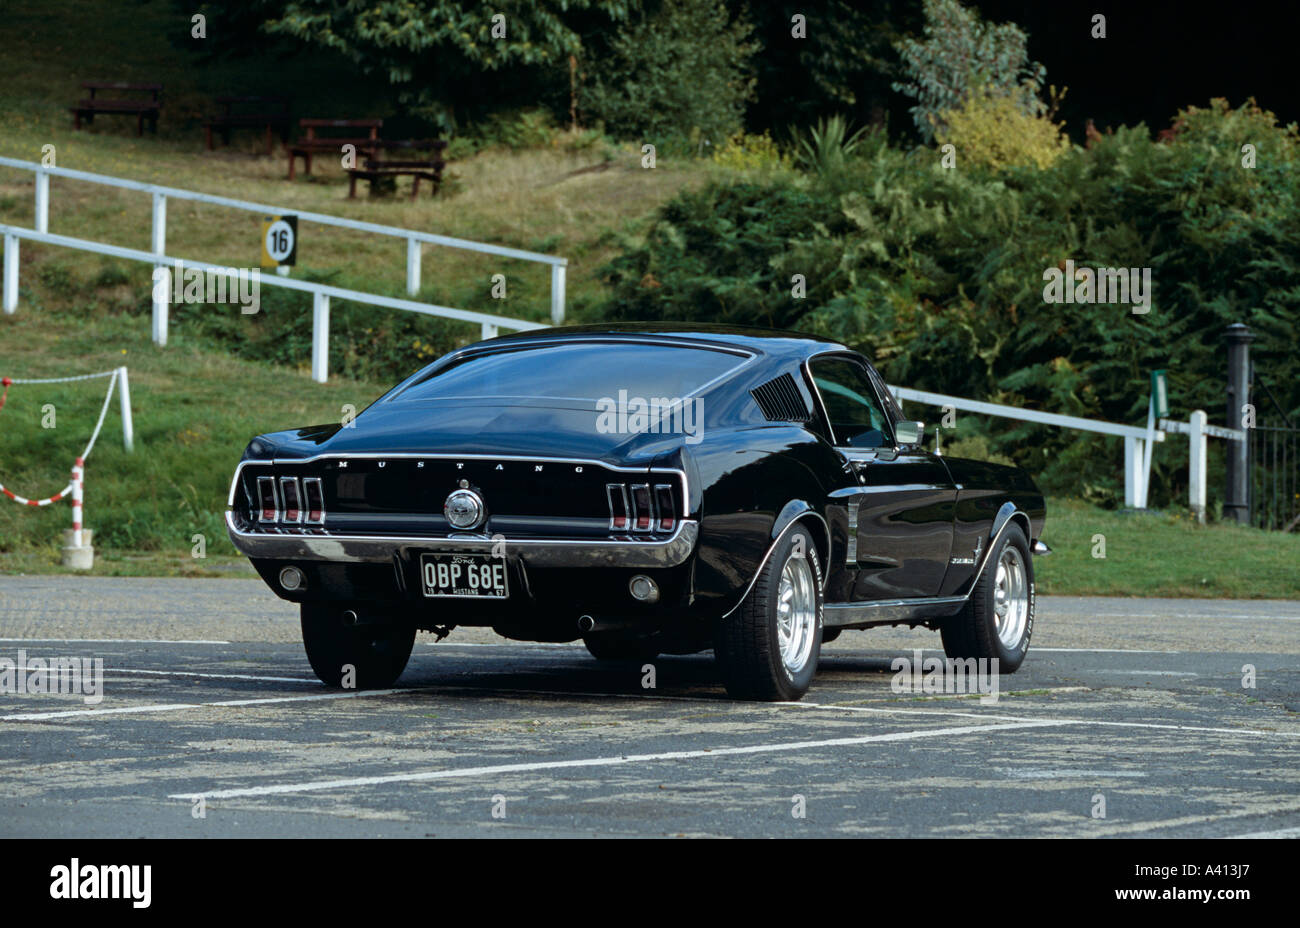 Ford mustang fastback of 1967